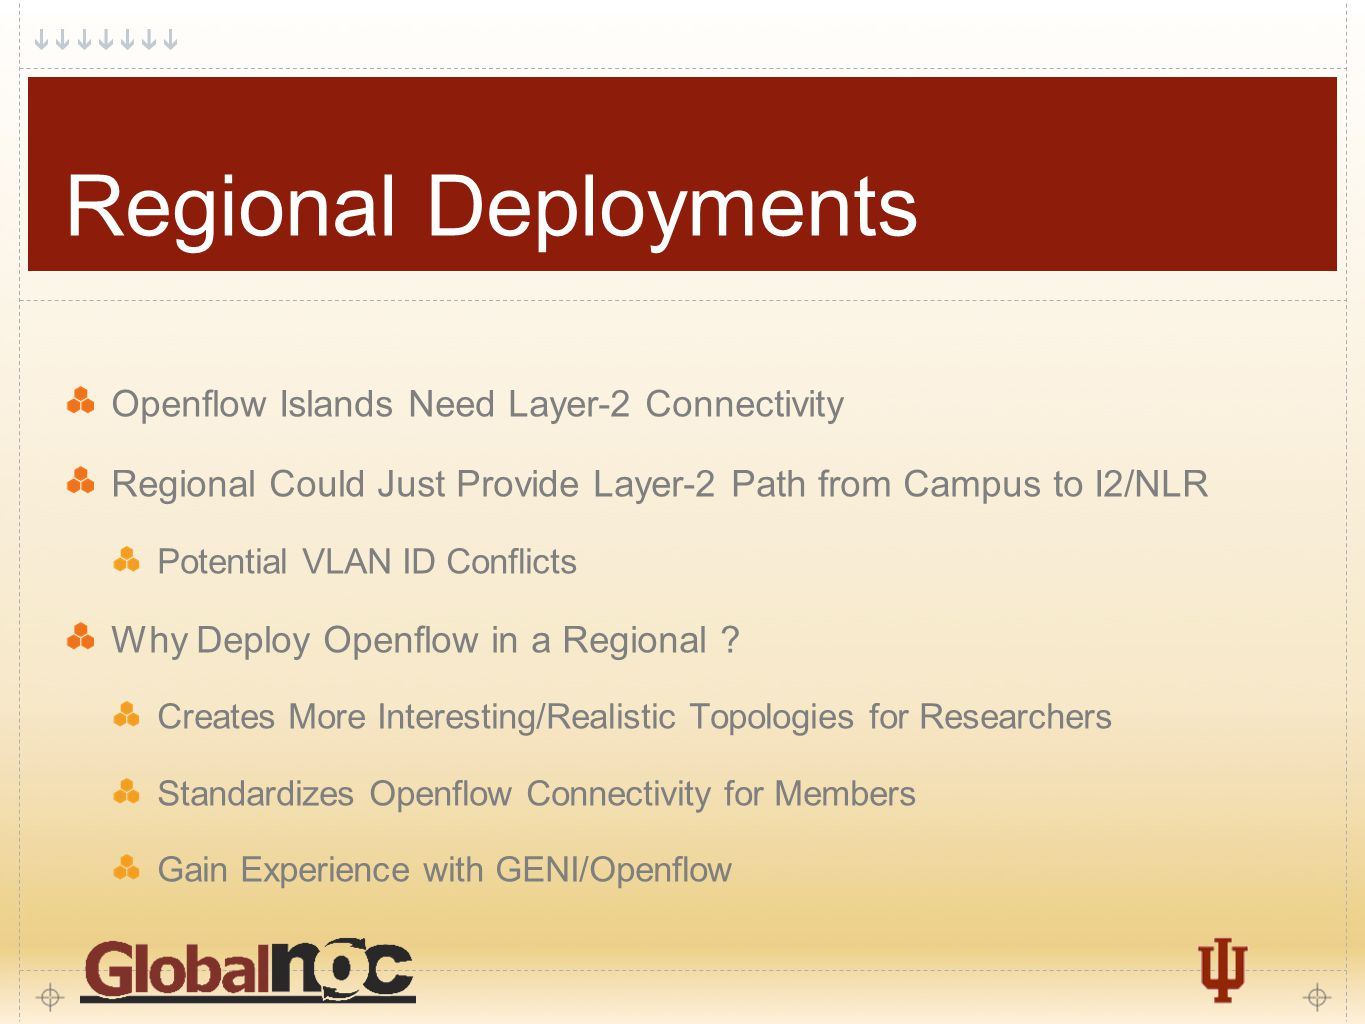 12 Regional Deployments Openflow Islands Need Layer-2 Connectivity Regional Could Just Provide Layer-2 Path from Campus to I2/NLR Potential VLAN ID Co